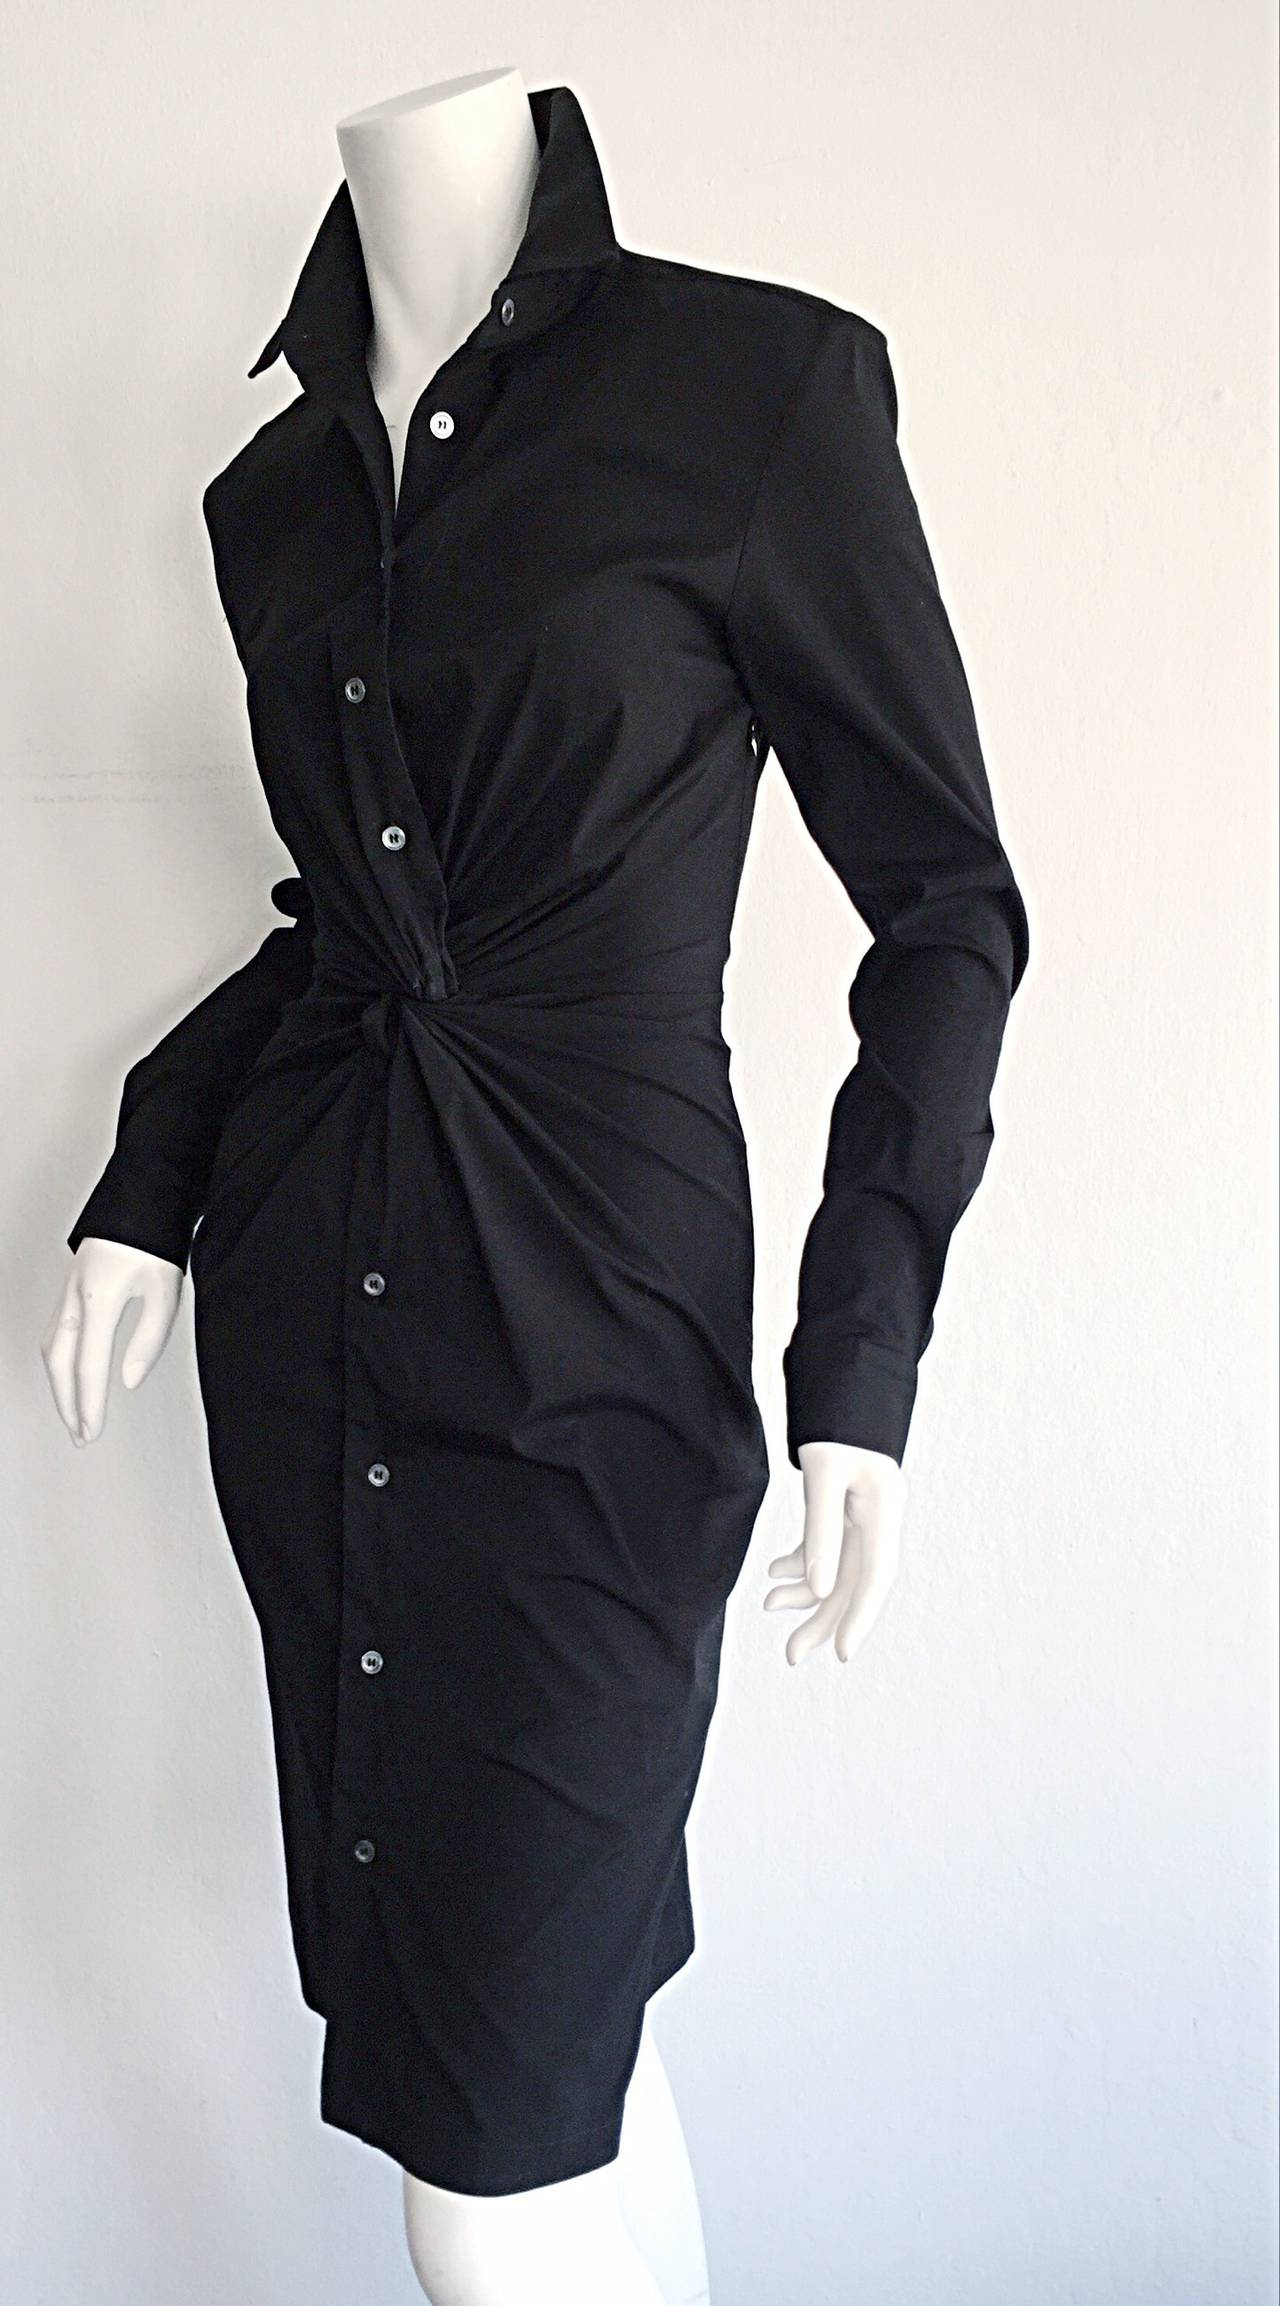 Ultimate Michael Kors Collection Black ' Twisted ' Shirt Dress LBD Size 2 7